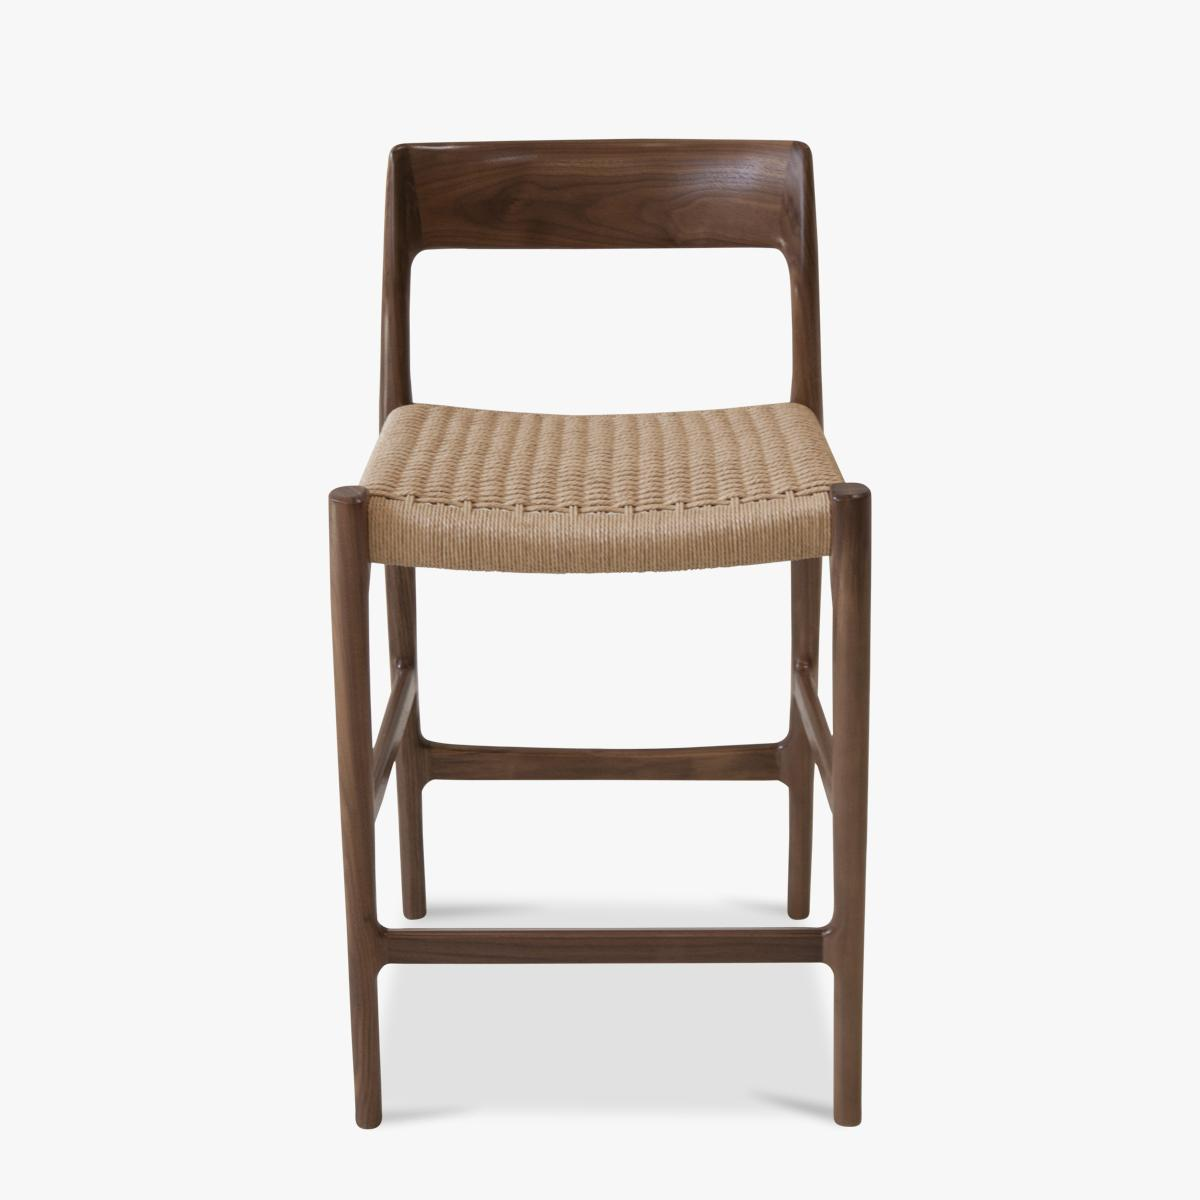 962_moller-counterstool-natural-black-paper-cord-1200